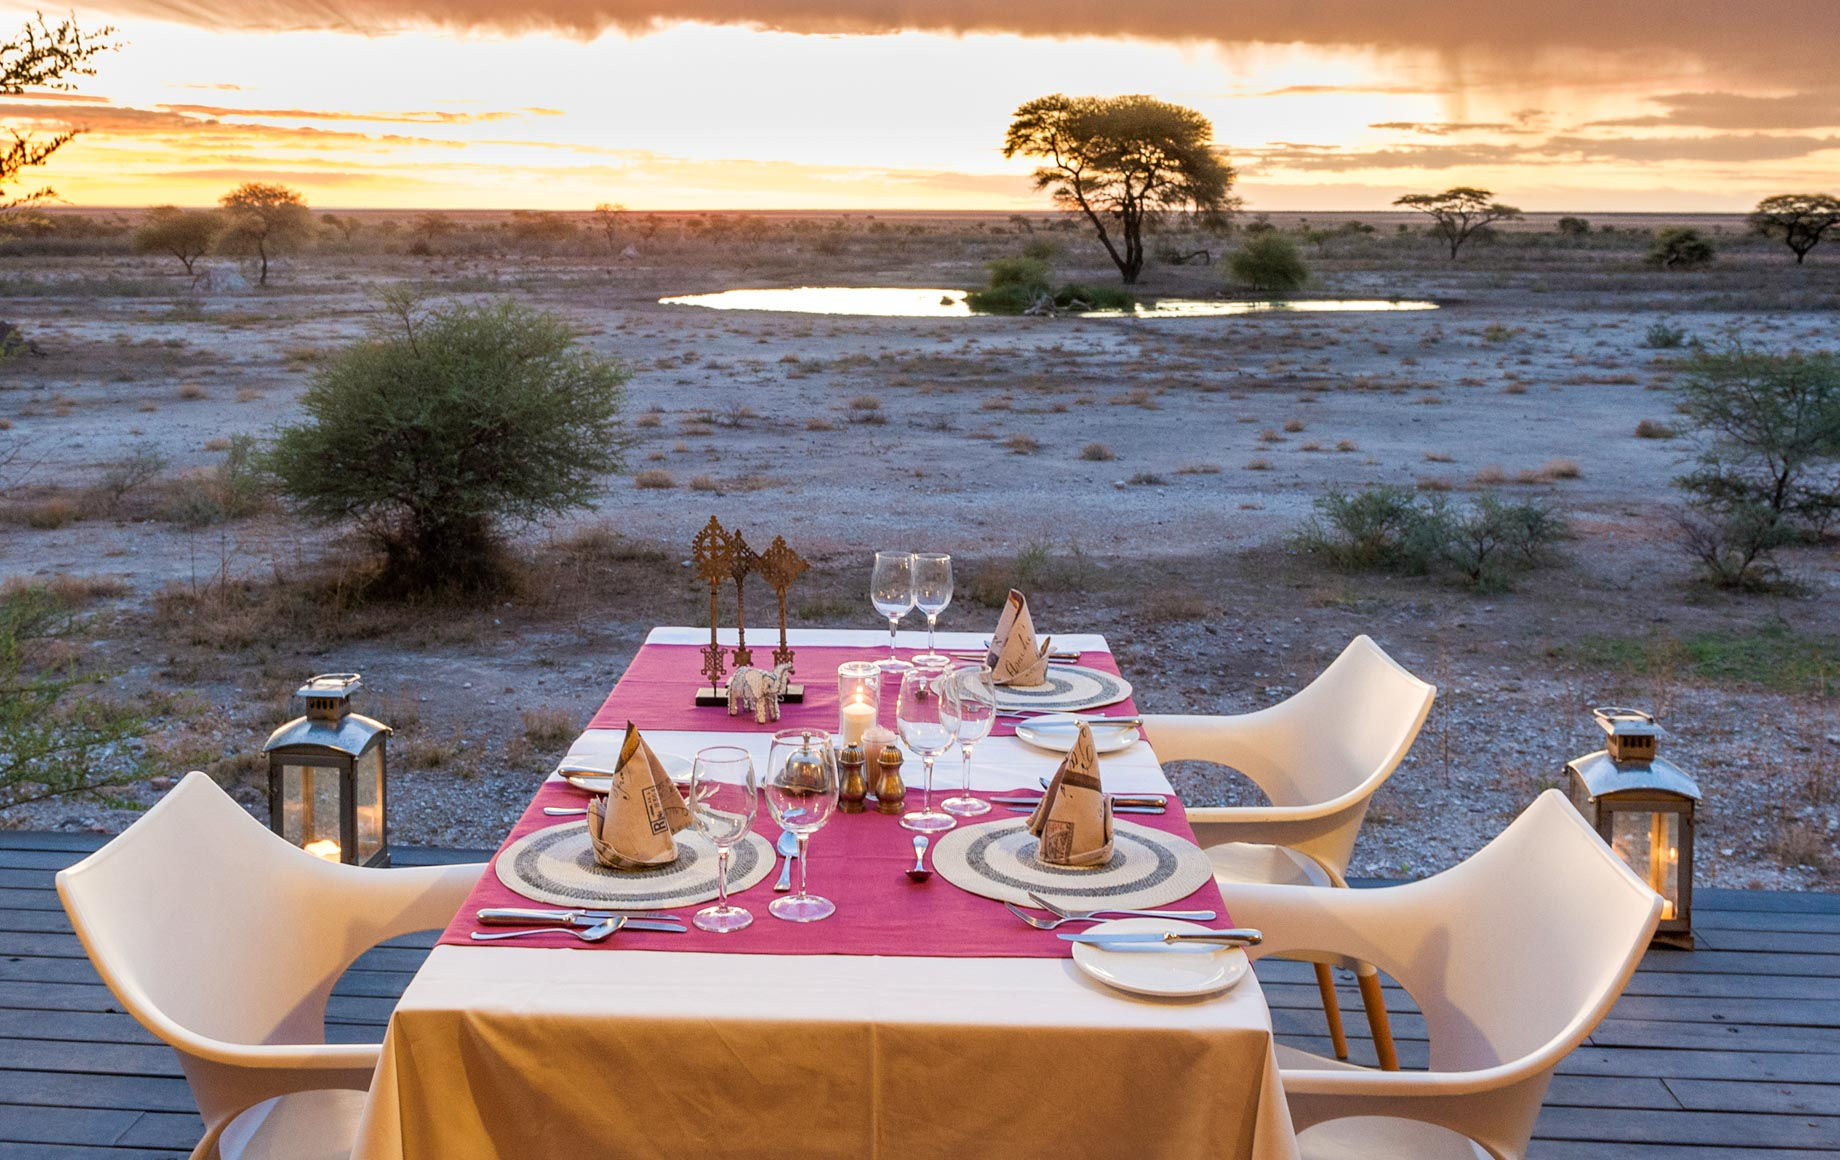 Table set for four overlooks Africa plains